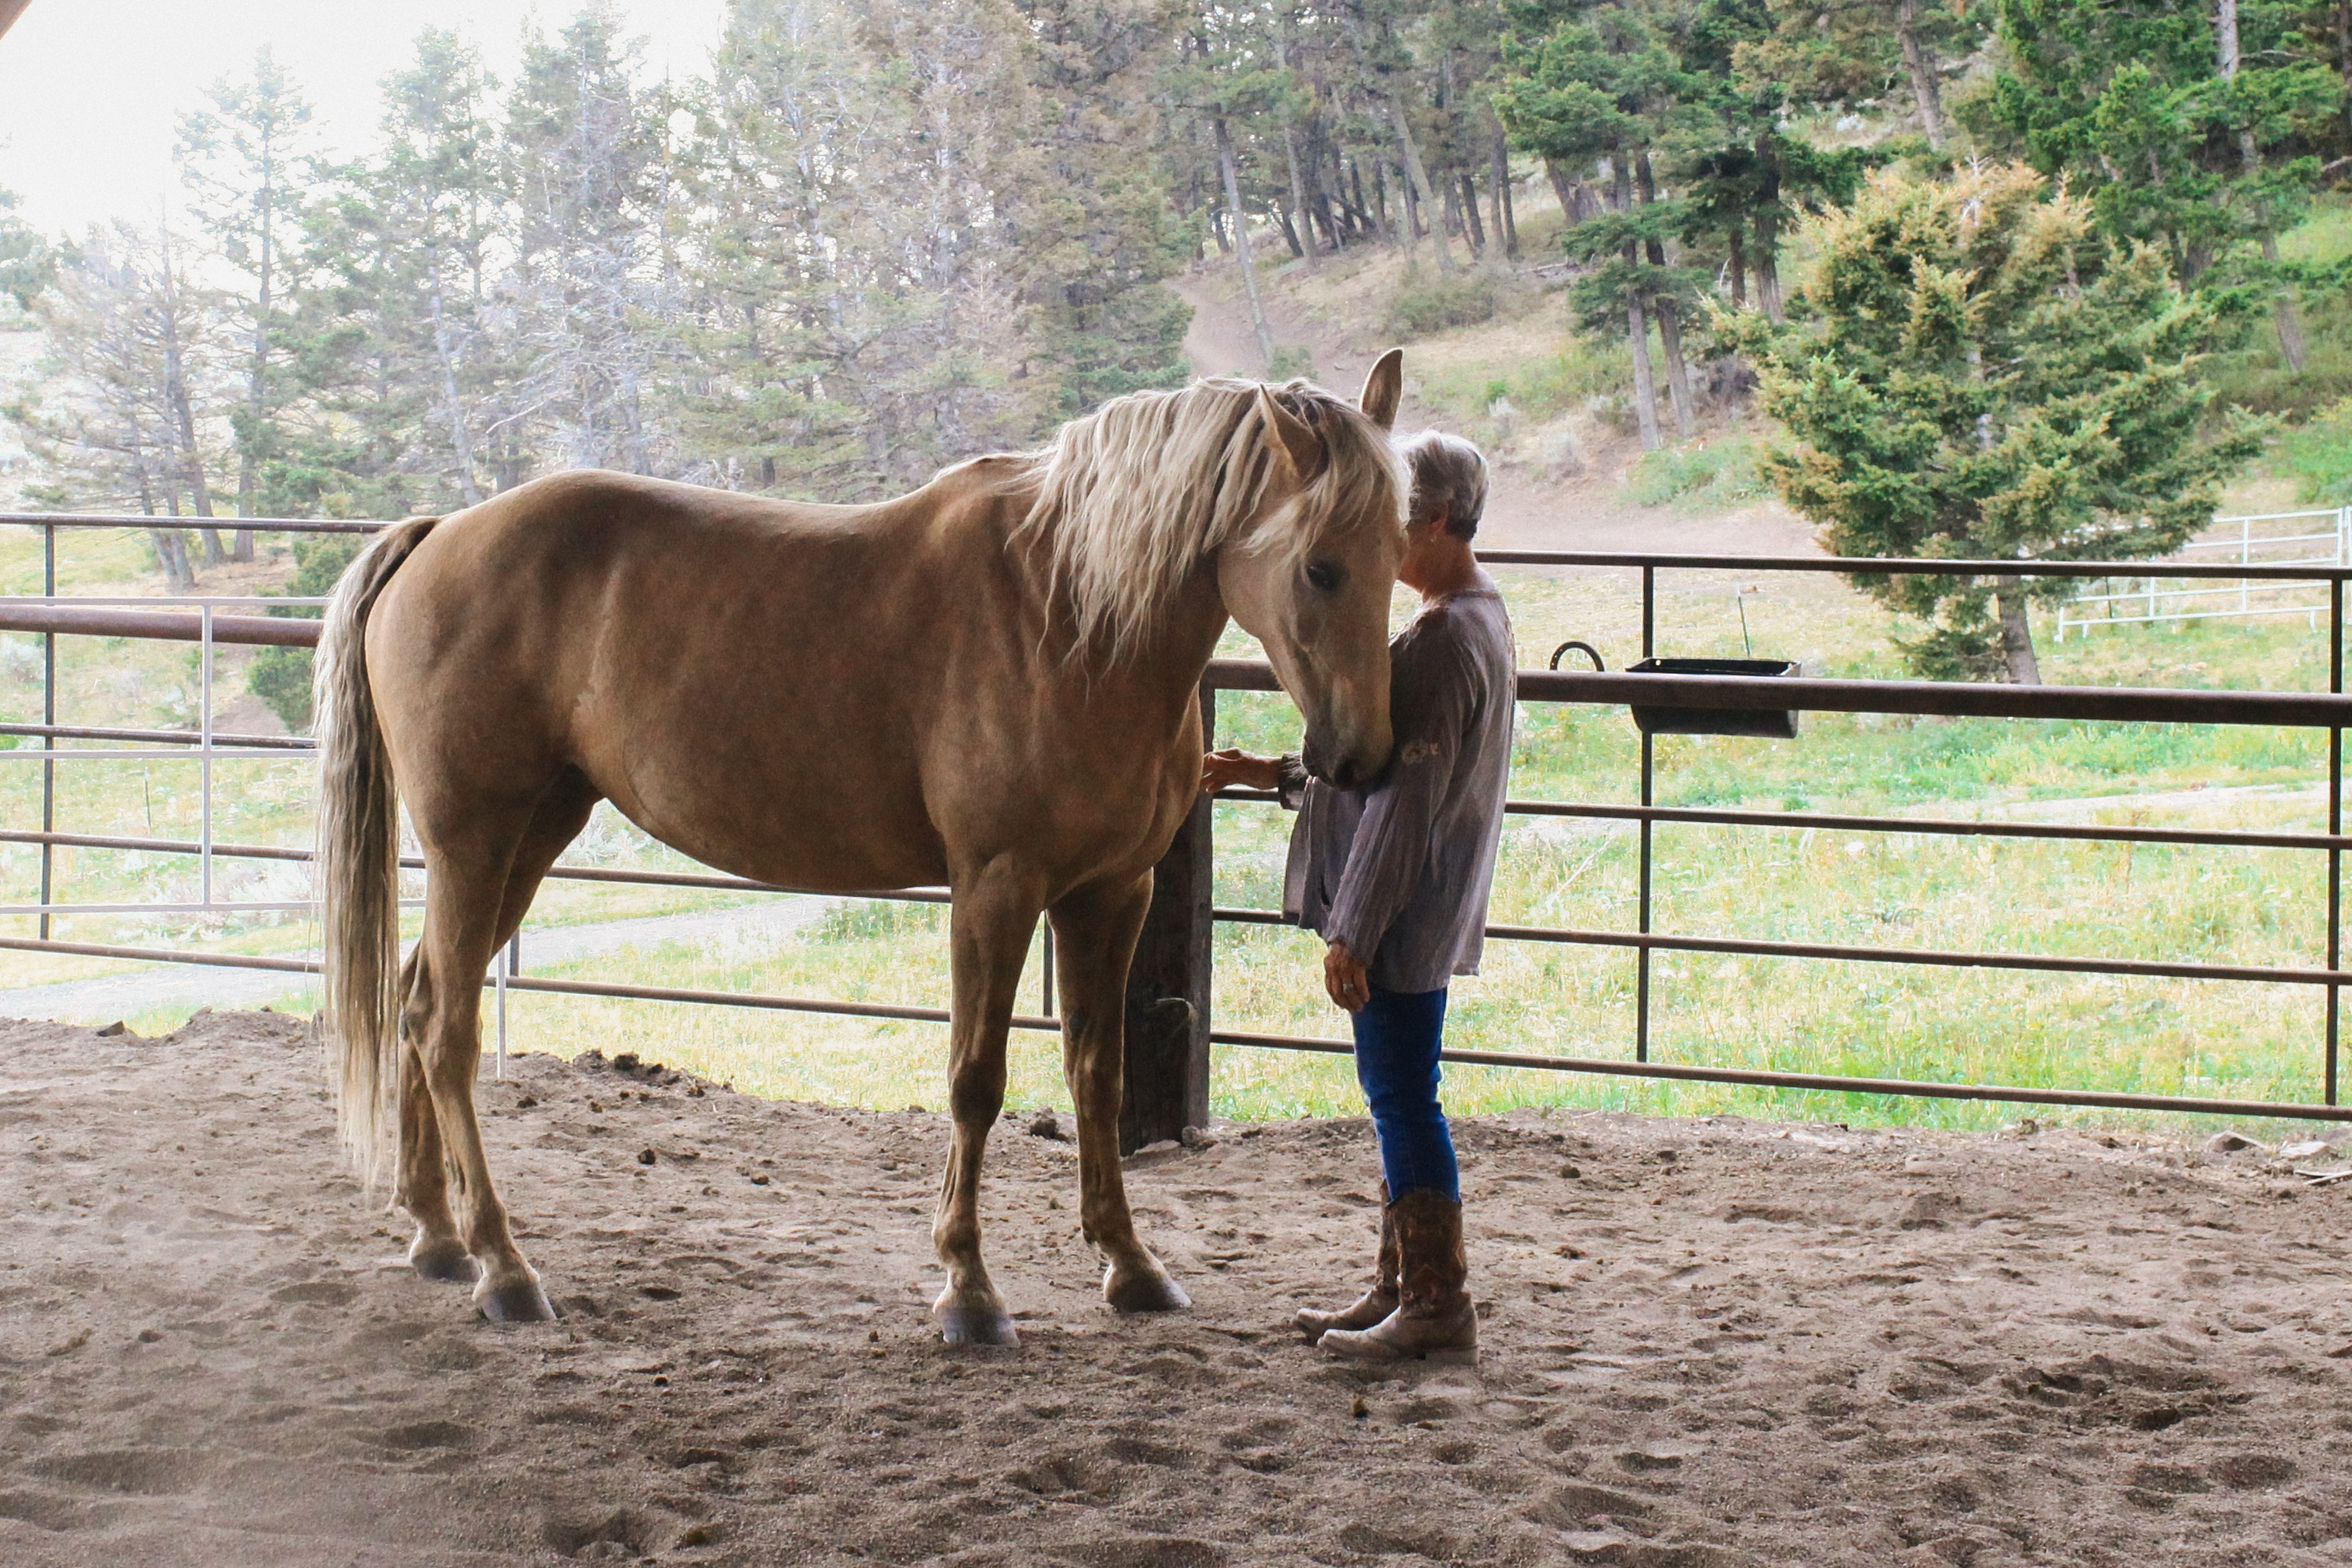 The connection you build with your horse is priceless.